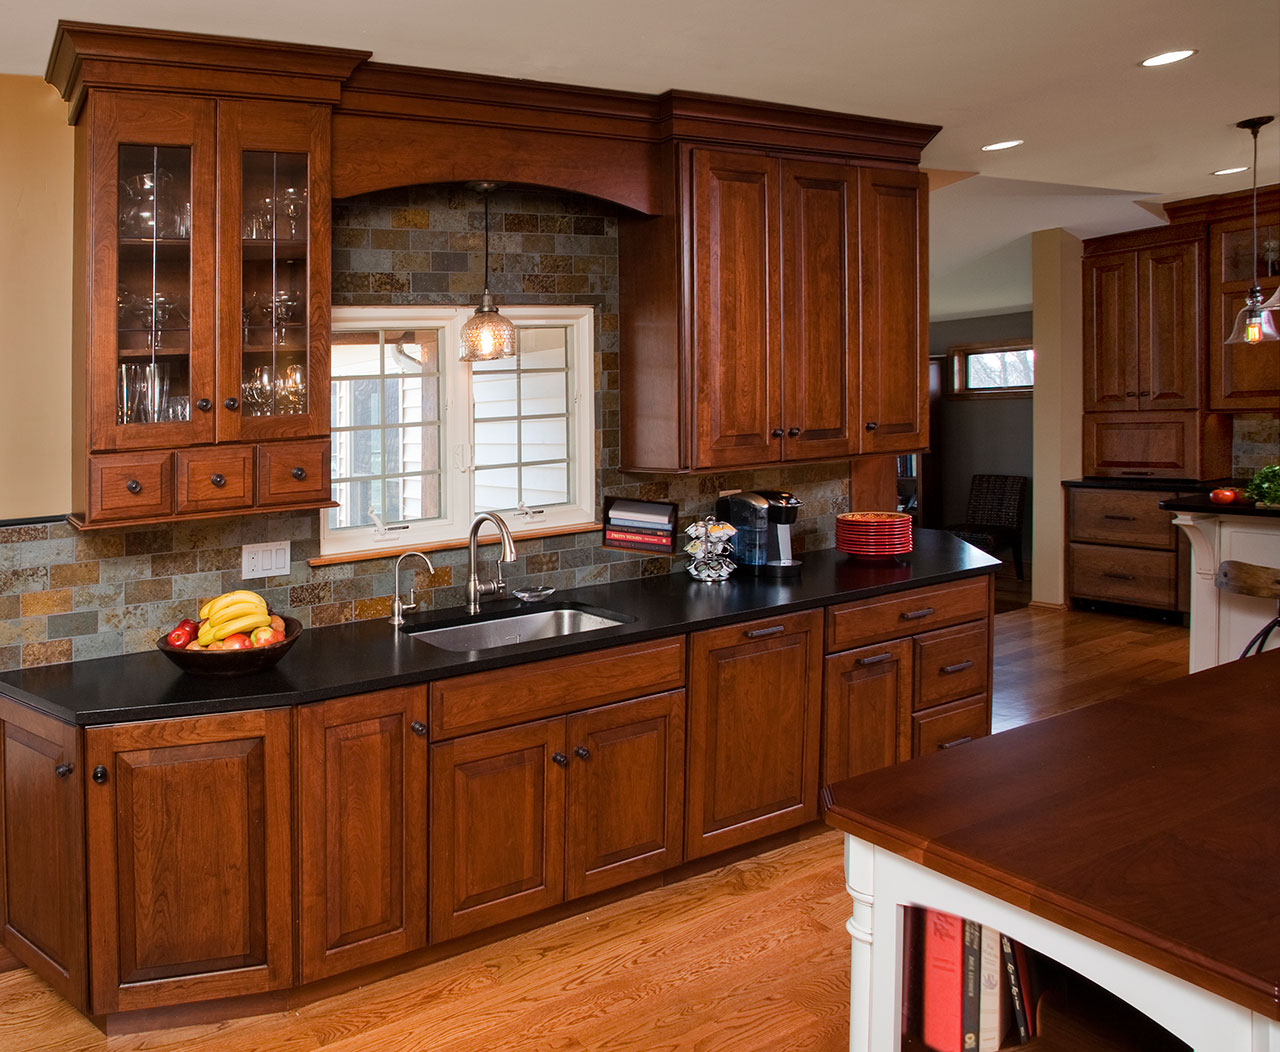 Kitchen Cabinets Design Video Traditional Kitchens Designs And Remodeling Htrenovations